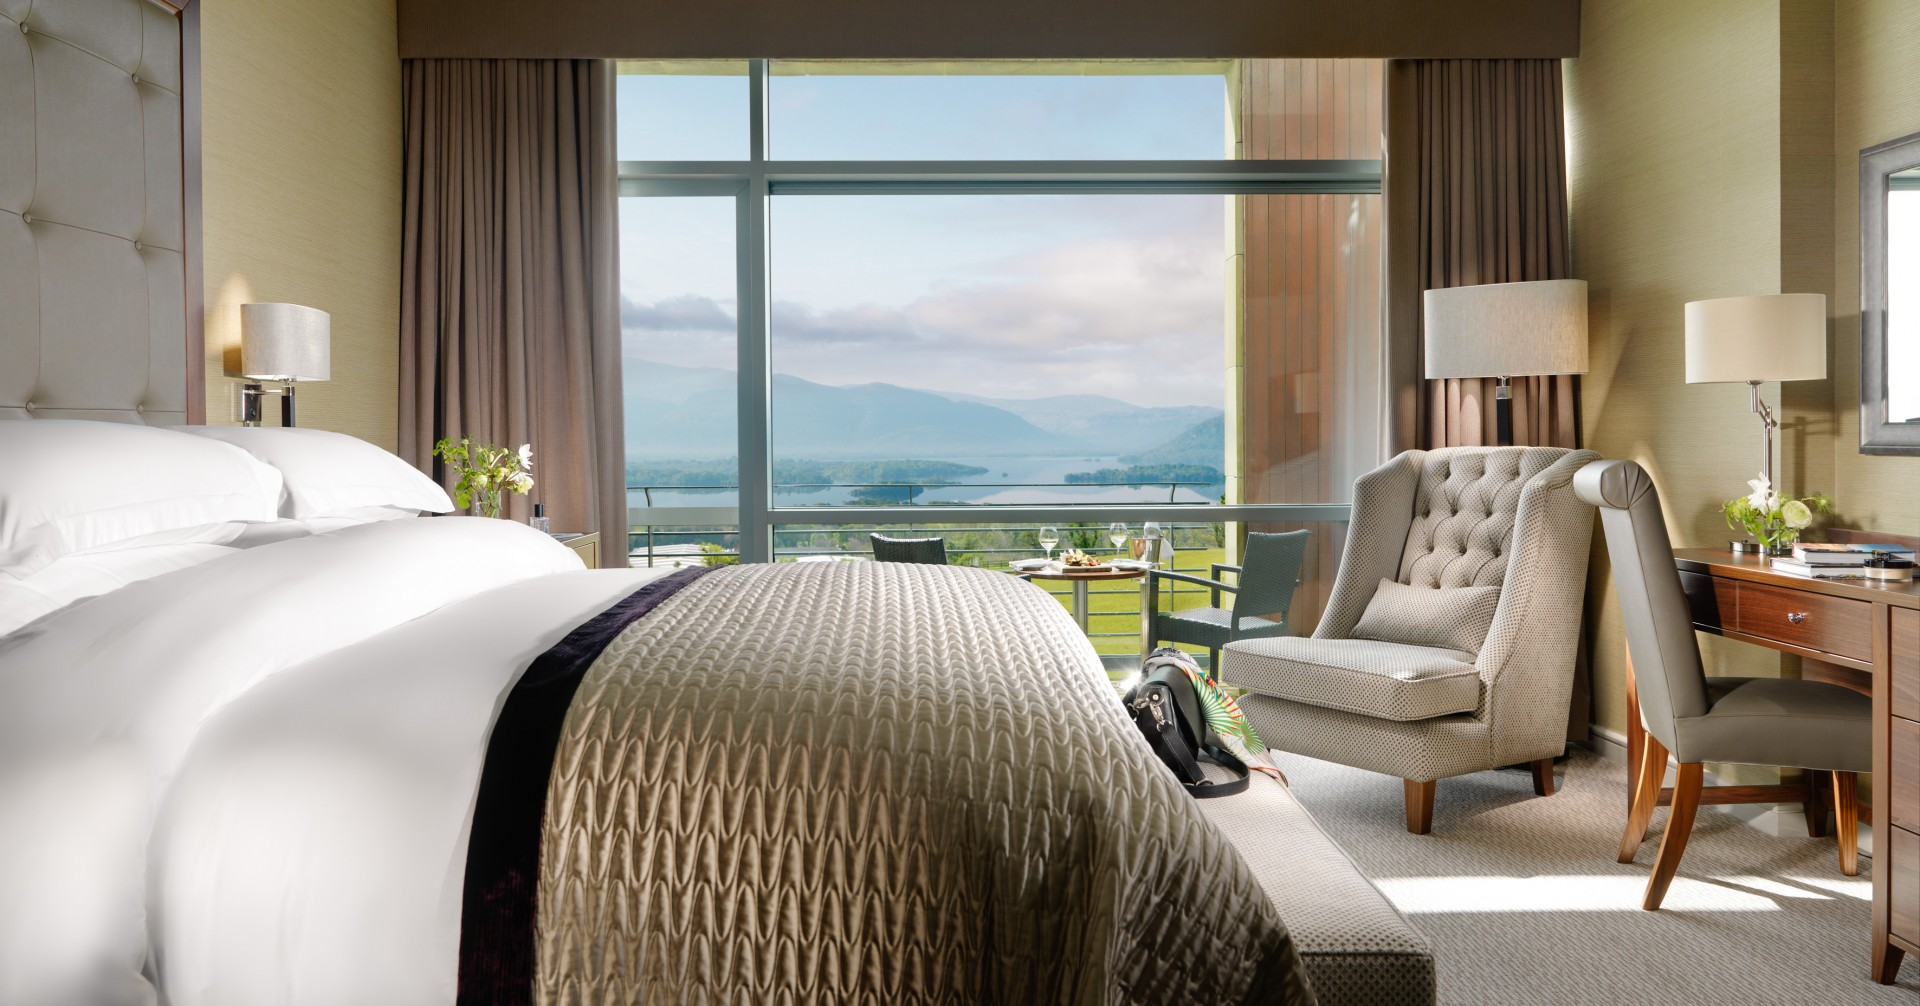 Spa Hotels Killarney